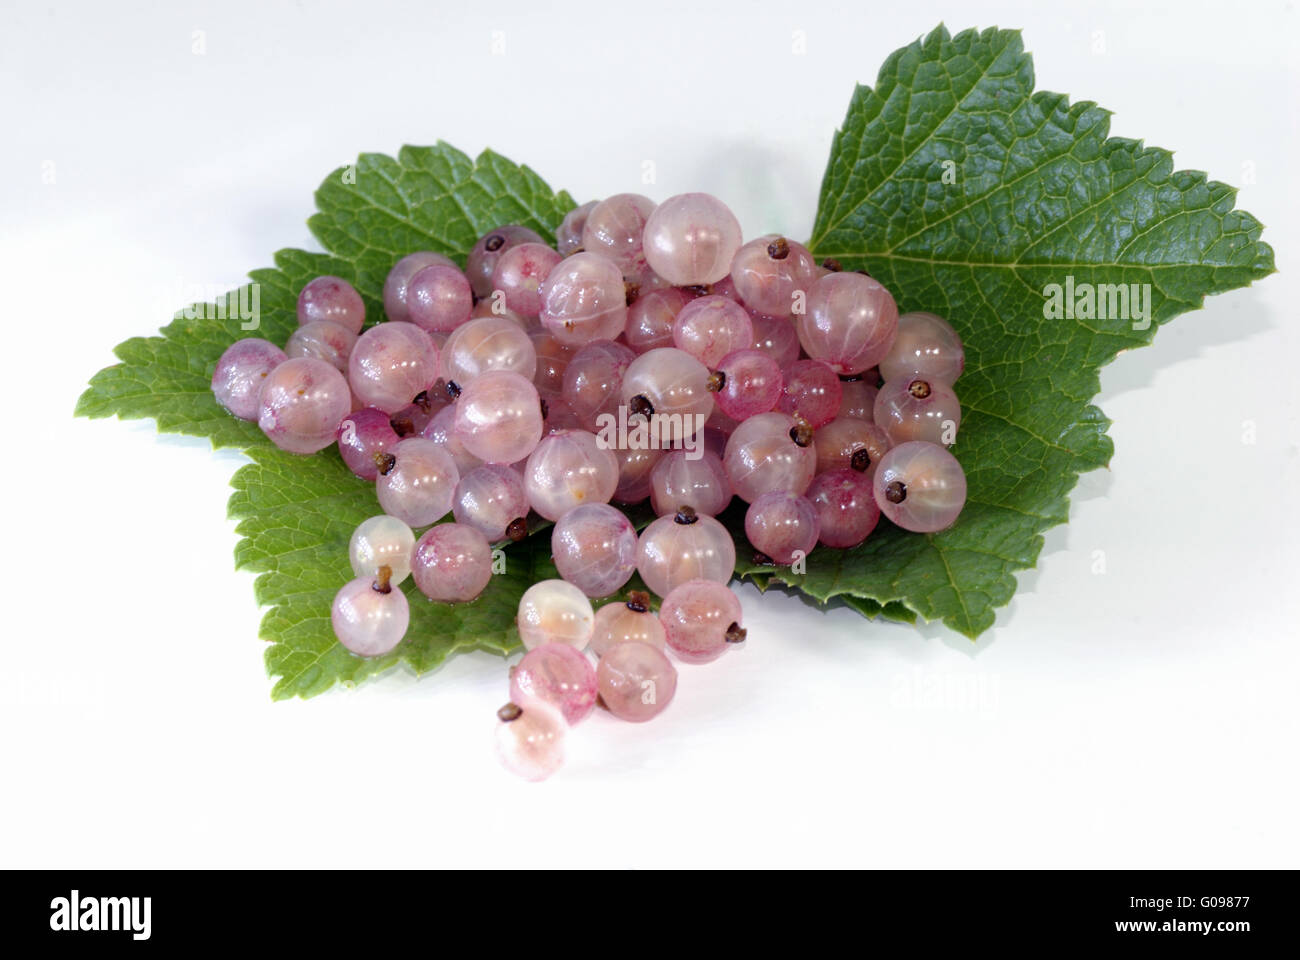 white currants with leafs - Stock Image